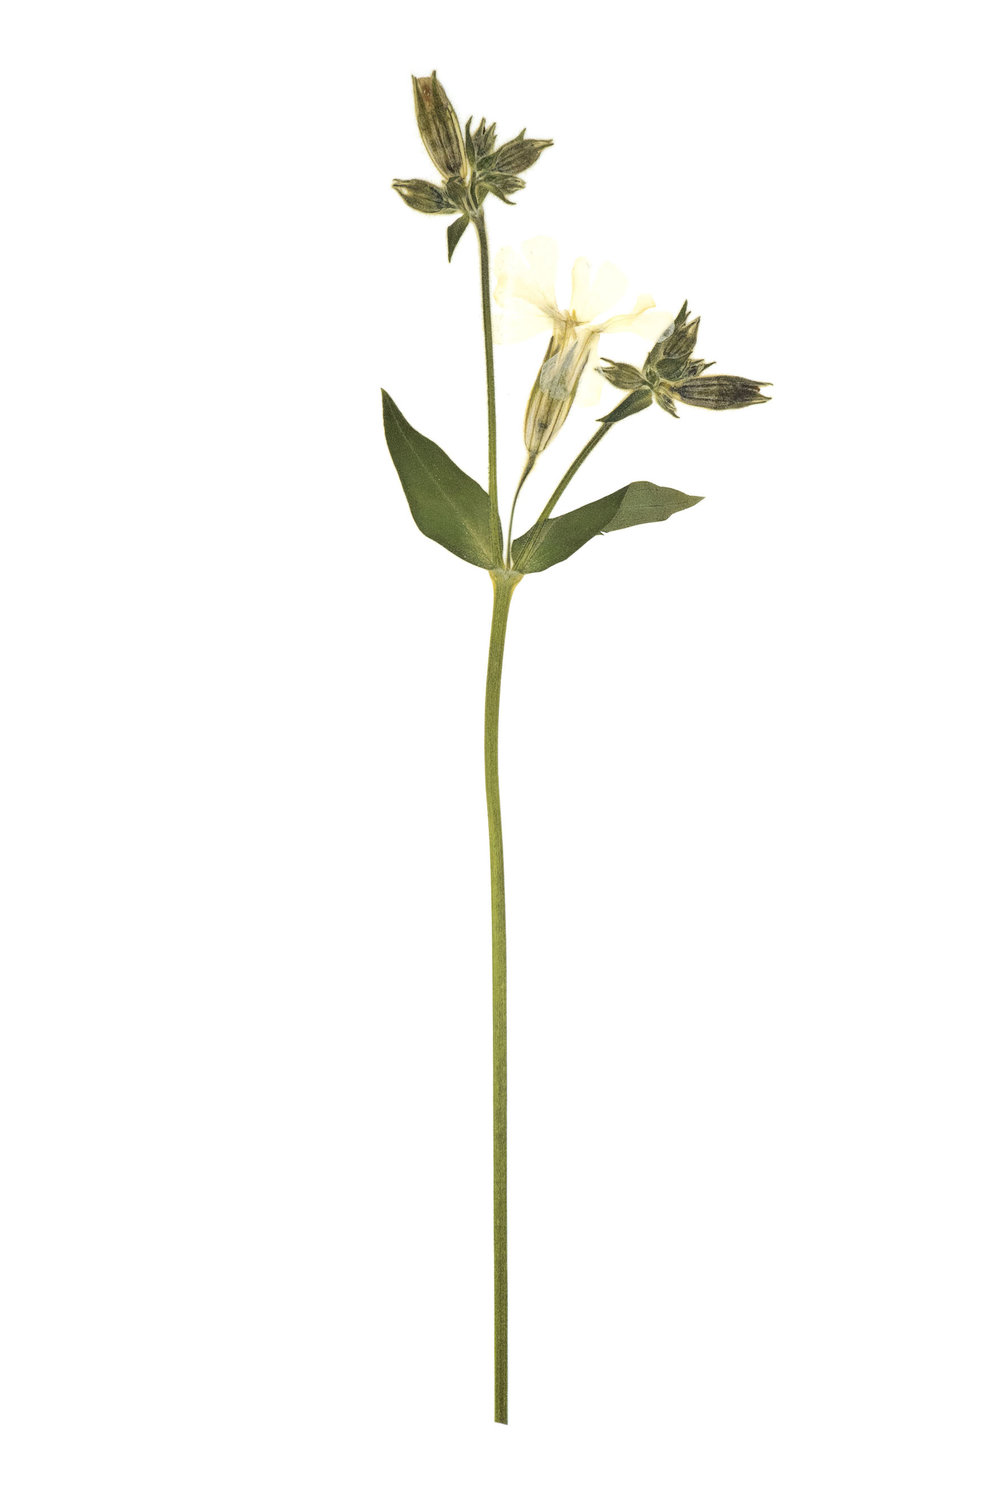 New! Silene pratensis / White Campion